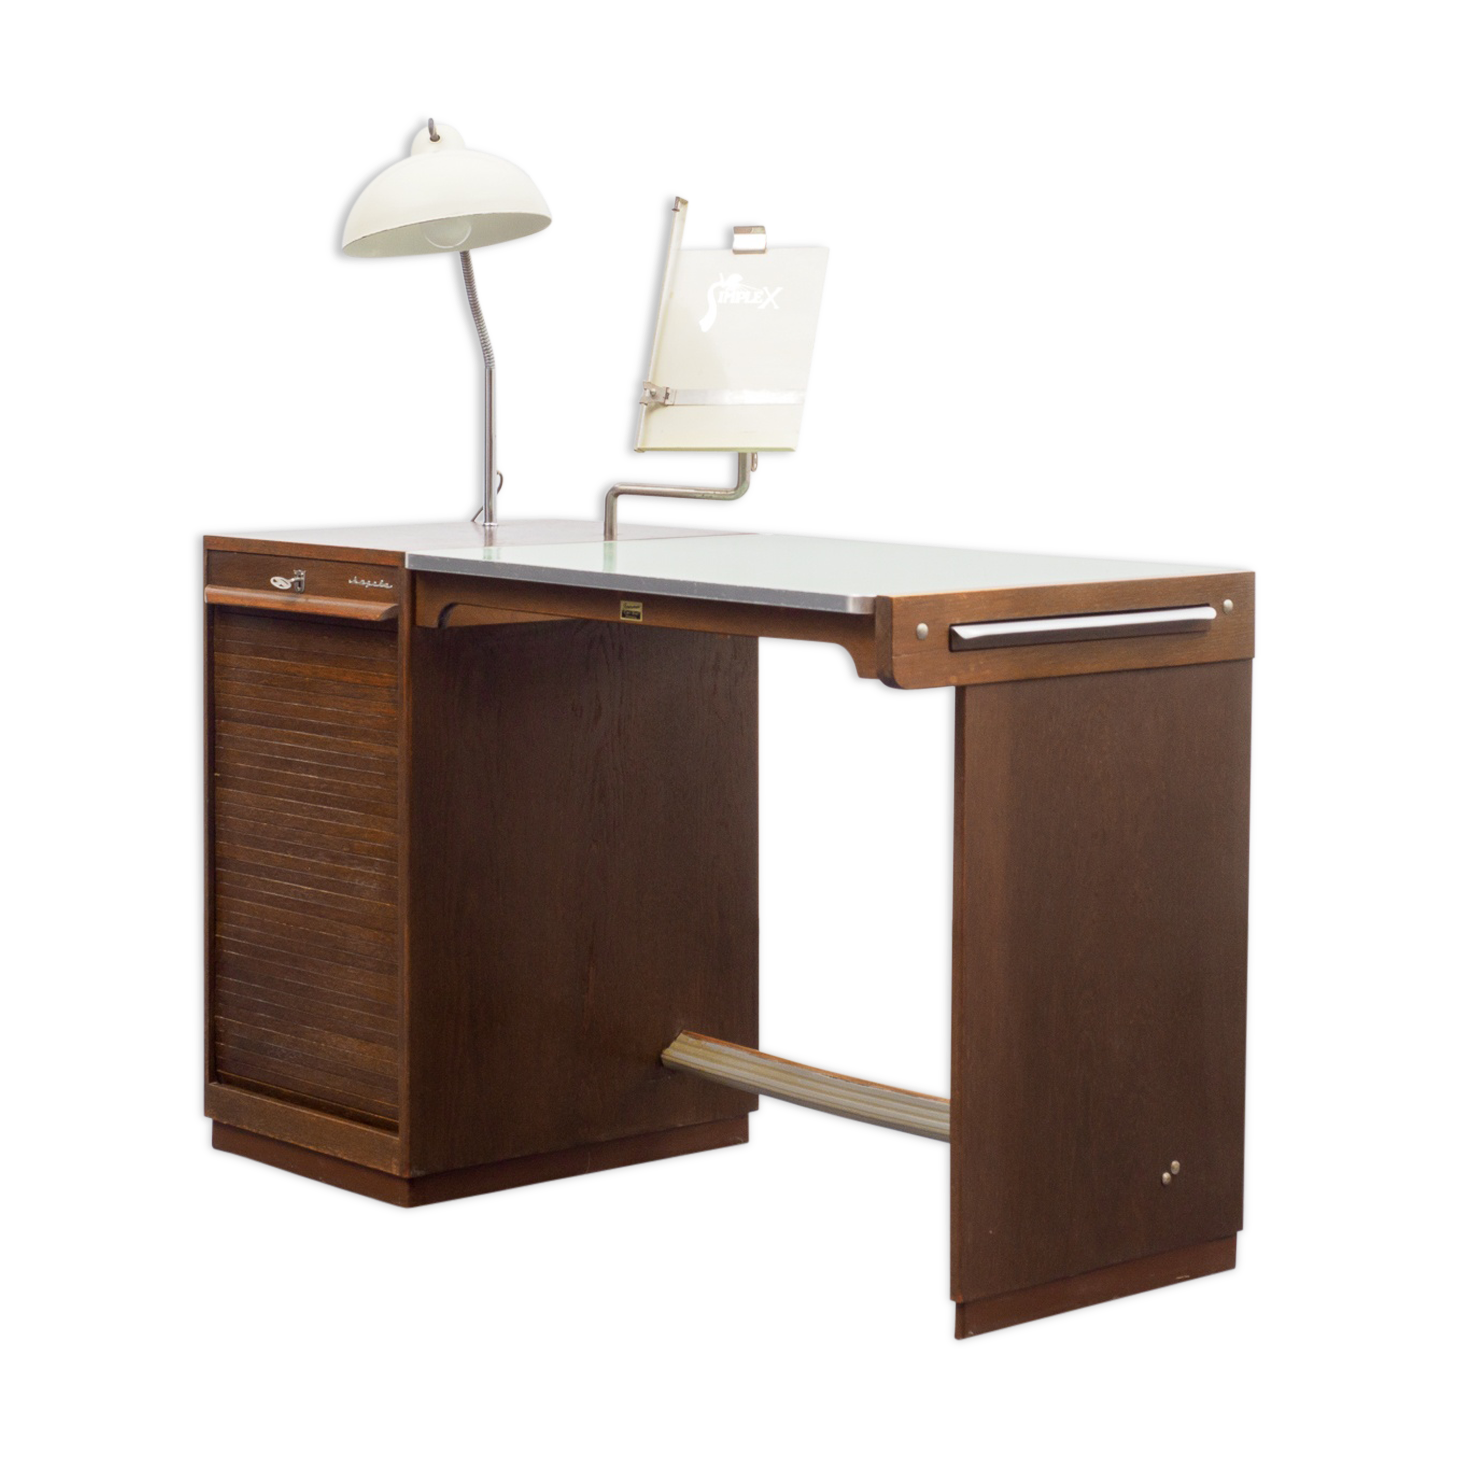 bureau profondeur 50 cool profondeur cm with bureau profondeur 50 affordable bureau crme et. Black Bedroom Furniture Sets. Home Design Ideas